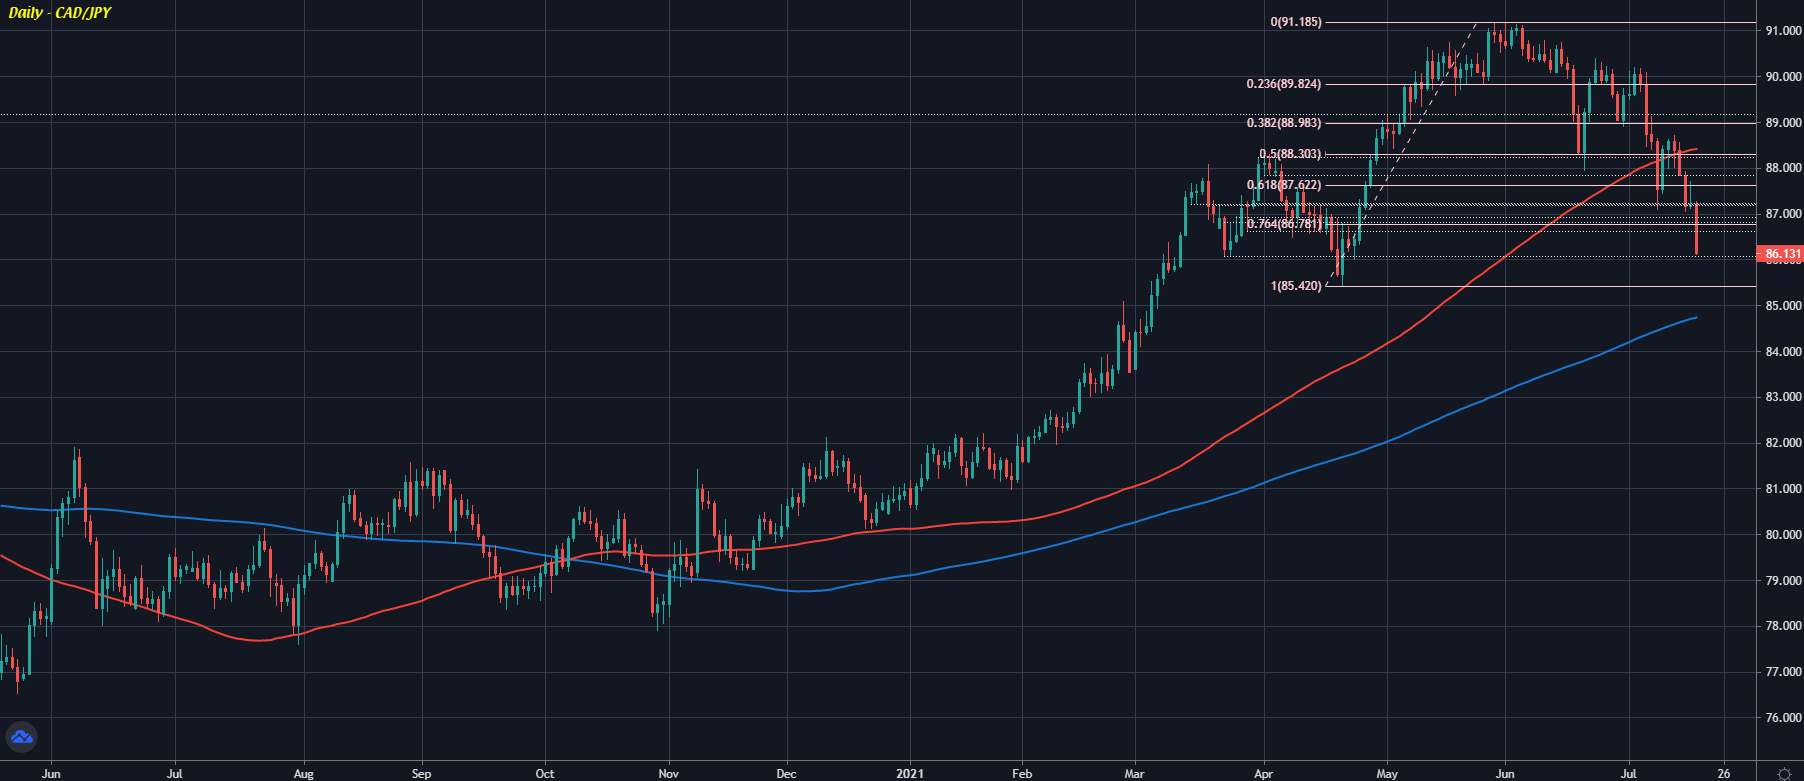 CAD/JPY D1 19-07